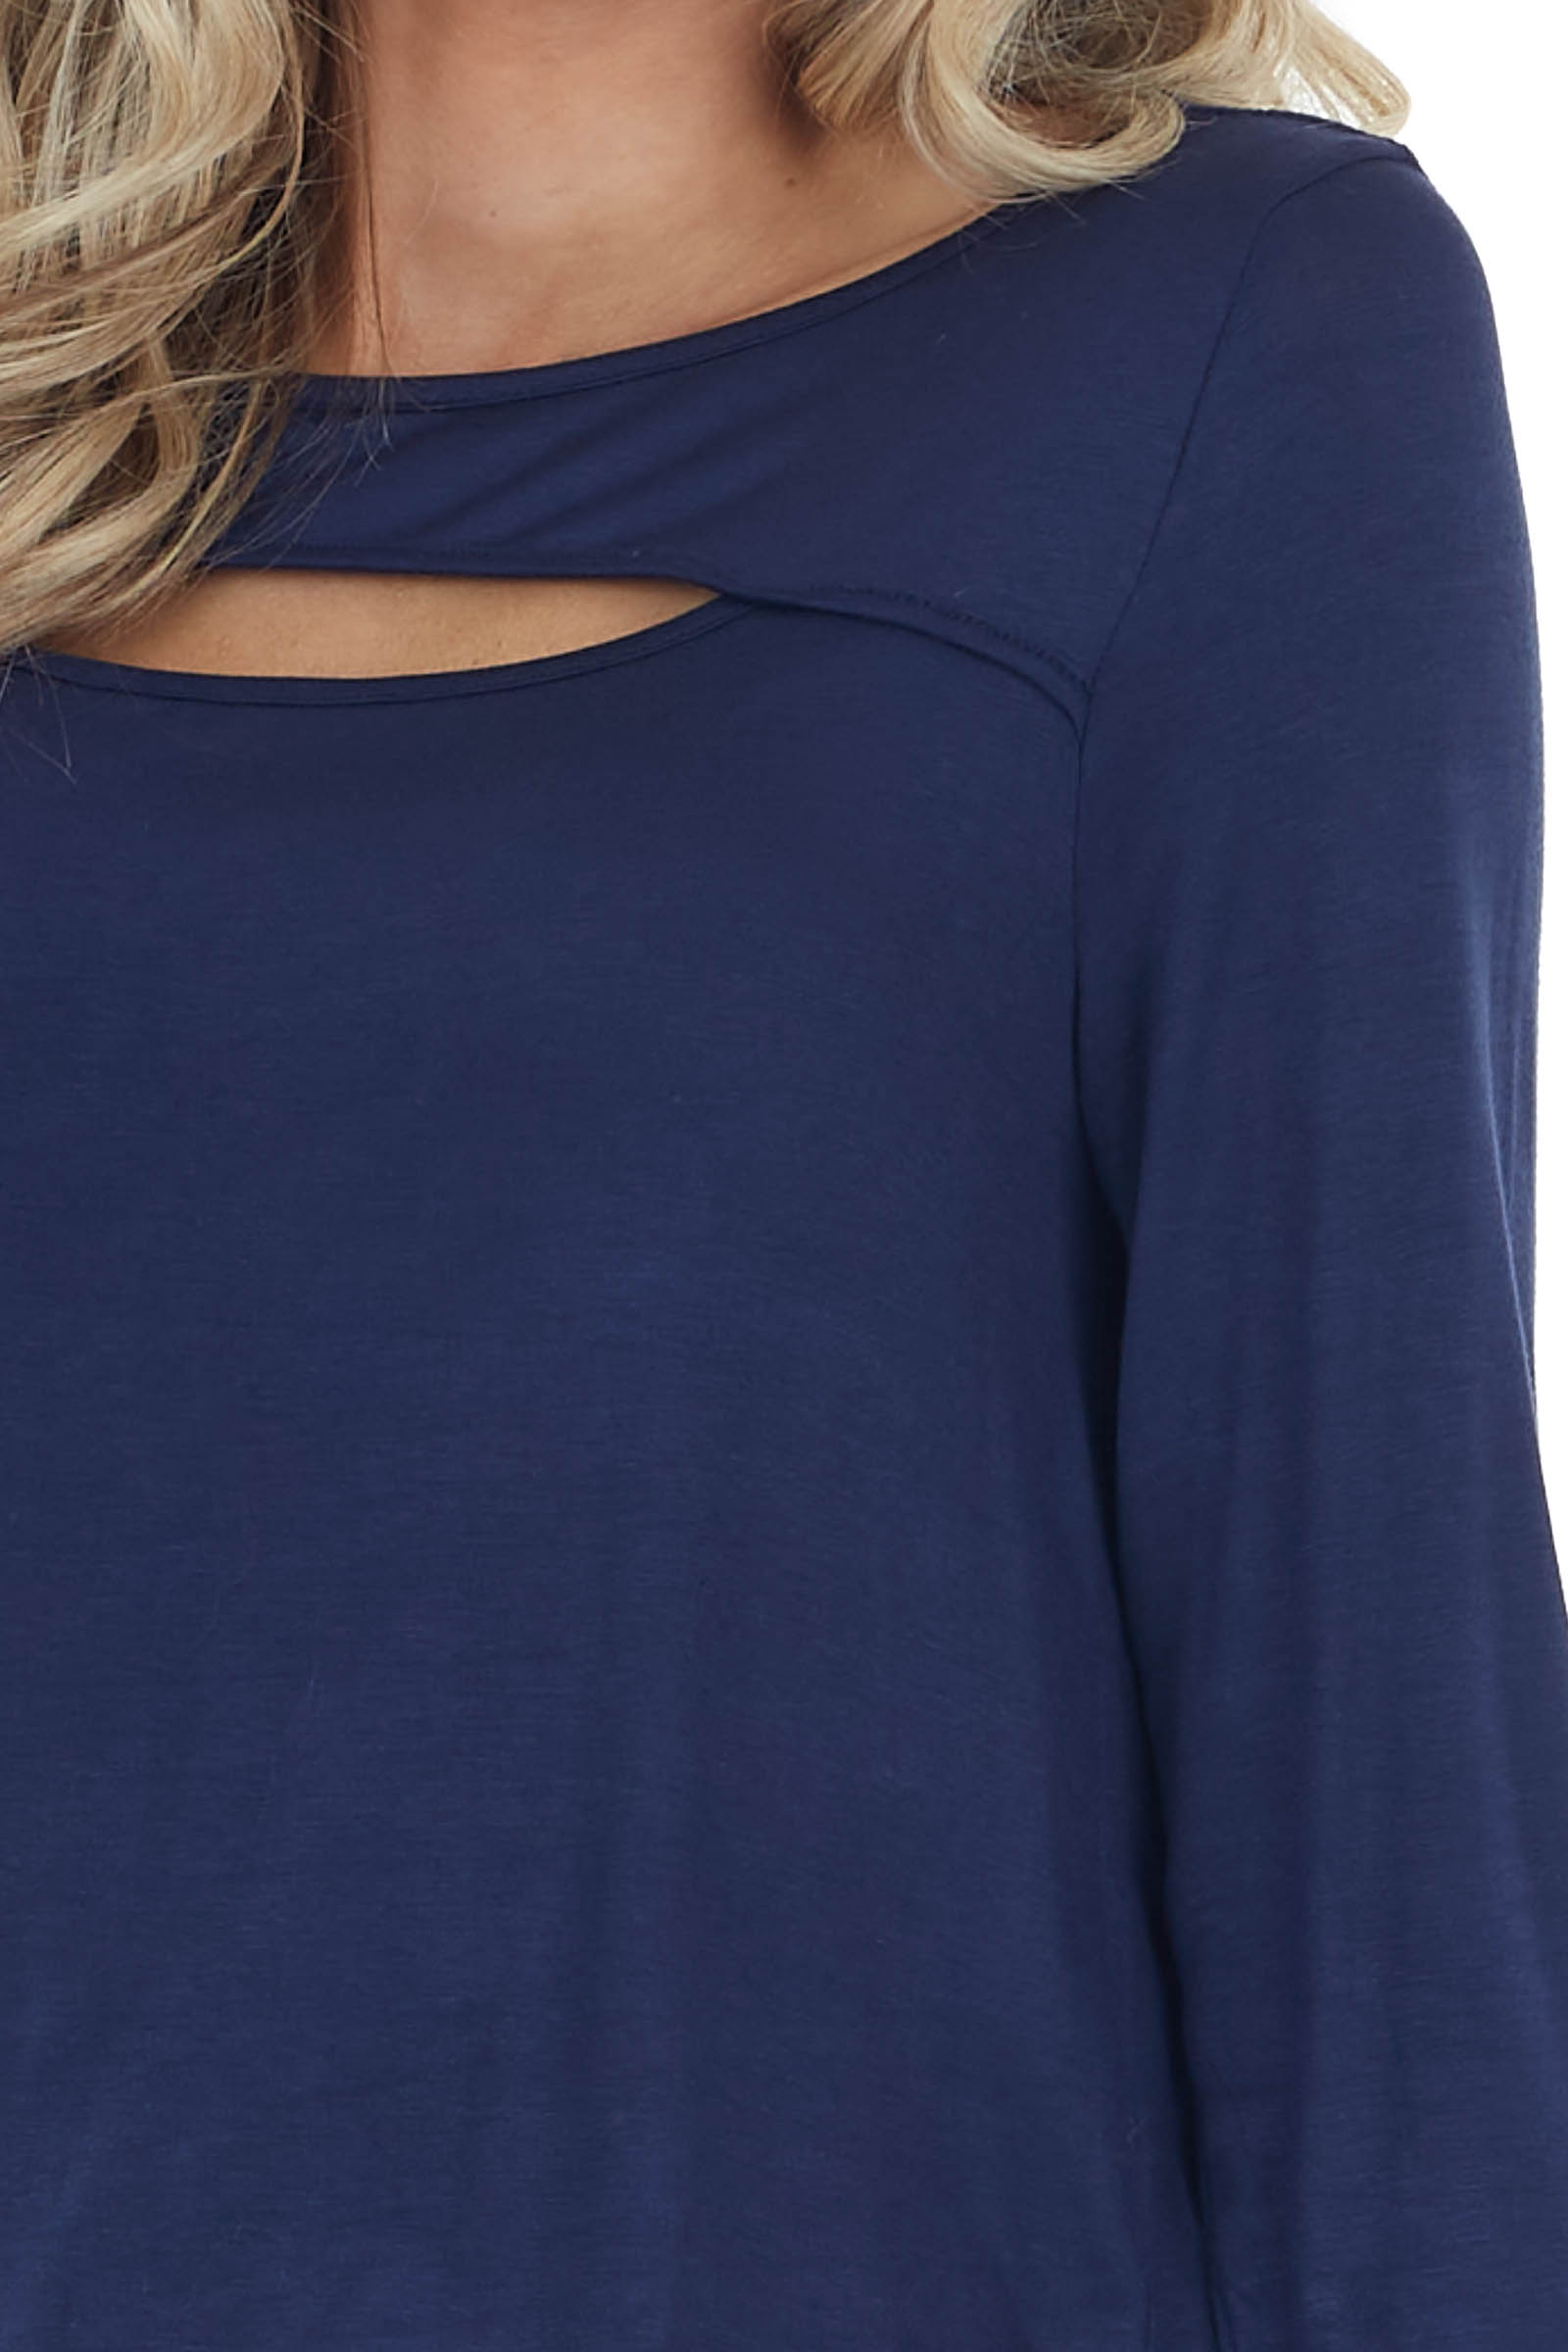 Navy Blue Soft Stretchy Long Sleeve Top with Chest Cutout